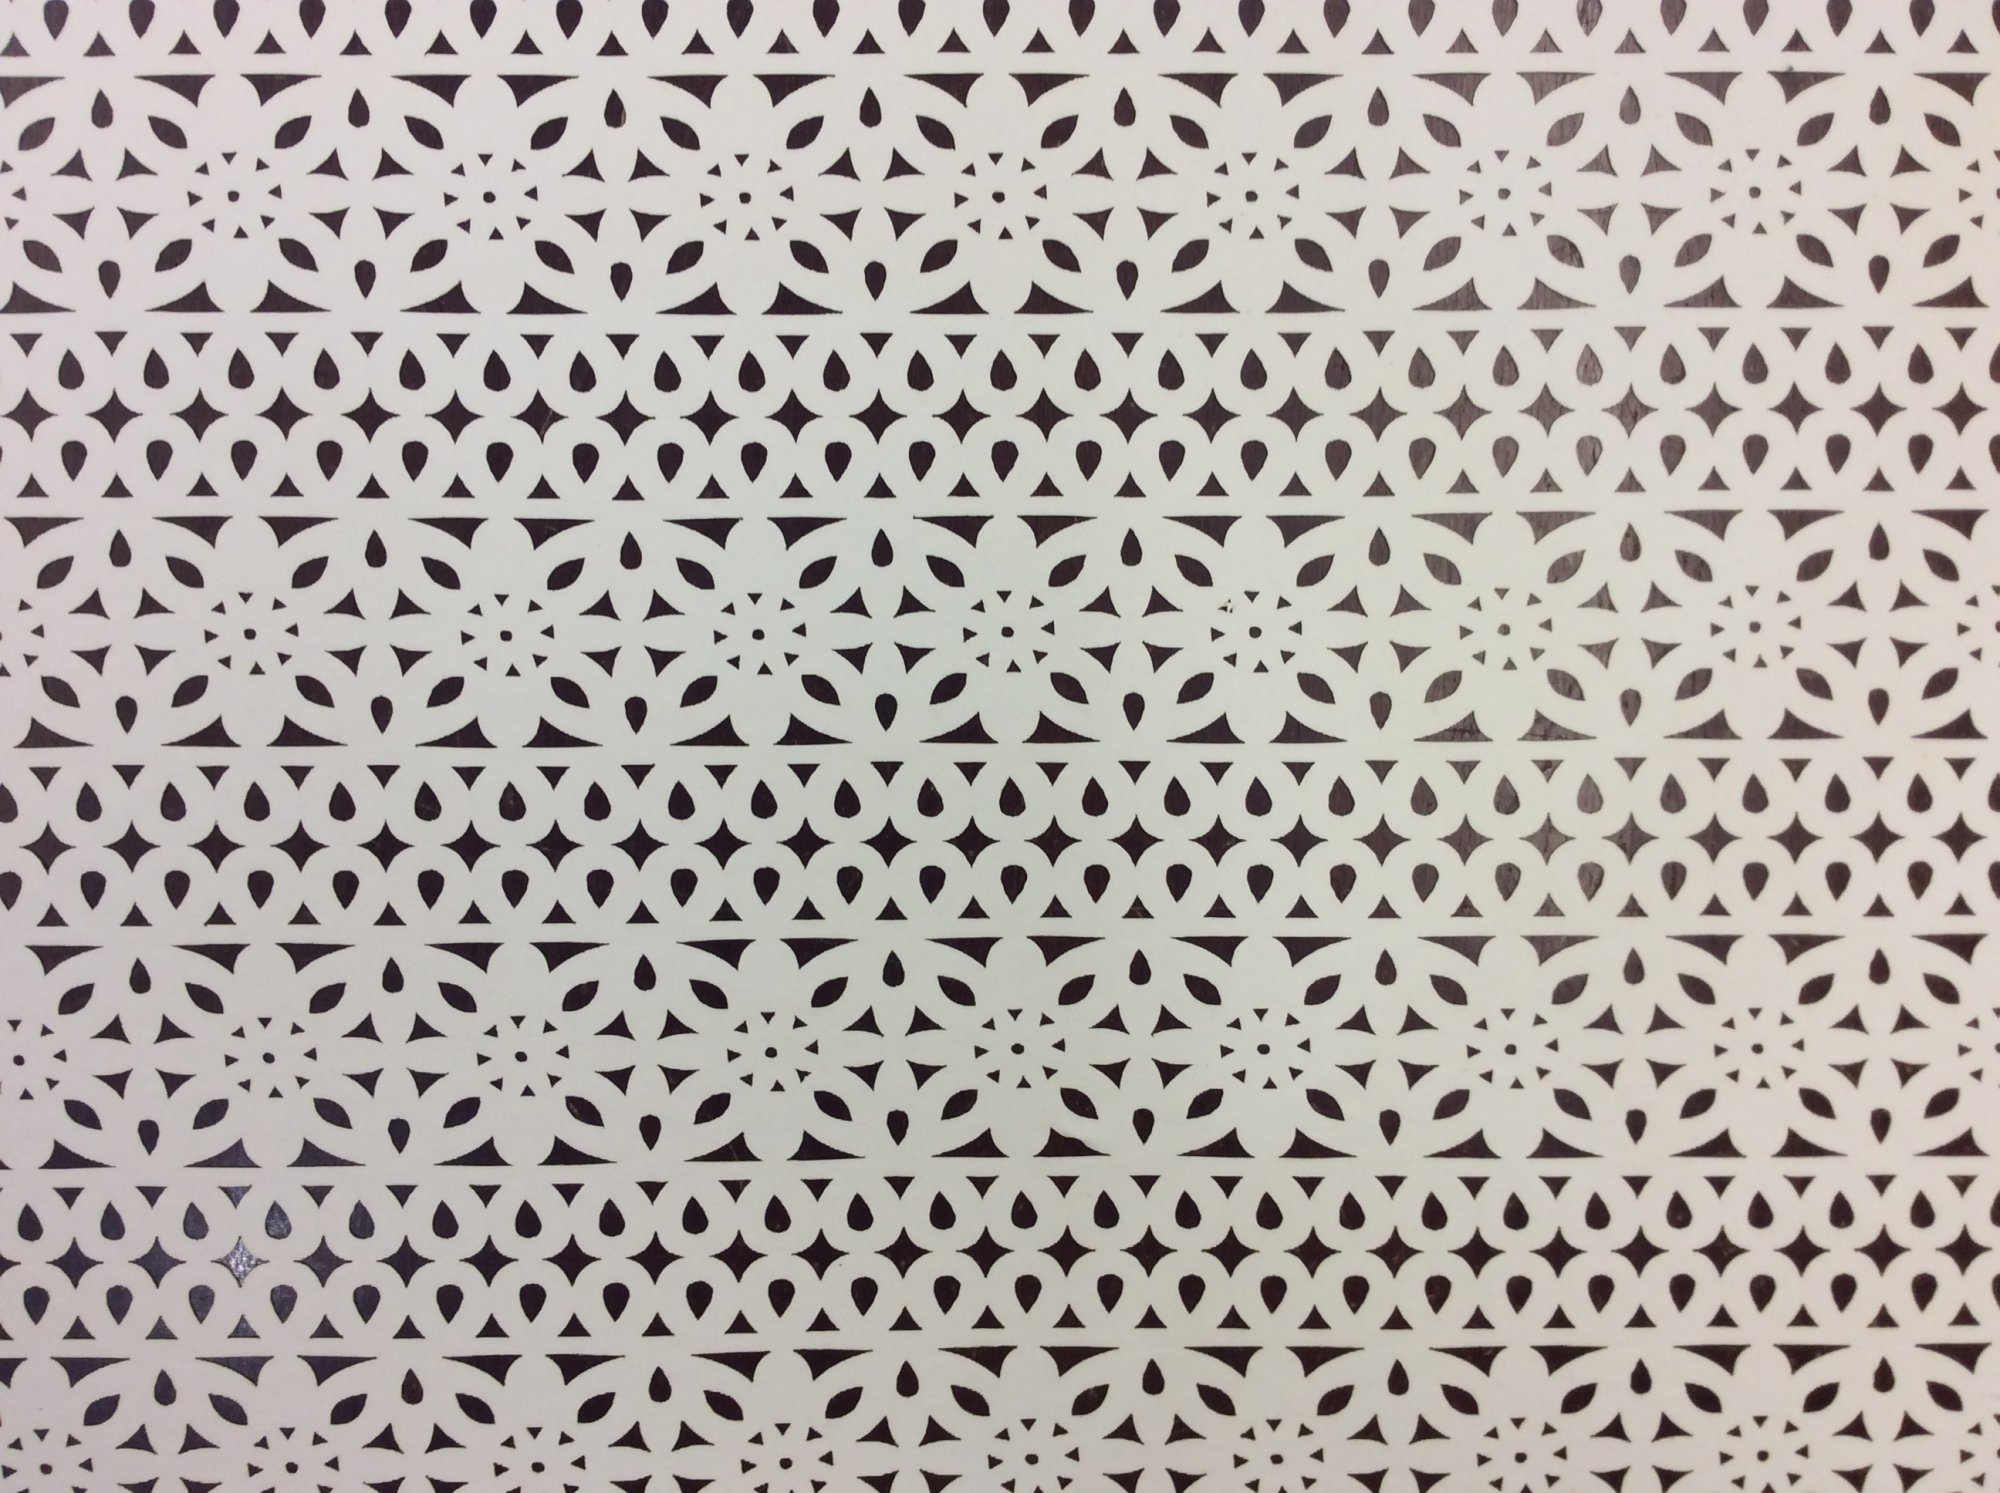 Laser Cut Out Floral Trina Turk Designer Polyester Apparel Sewing Fabric TT4660